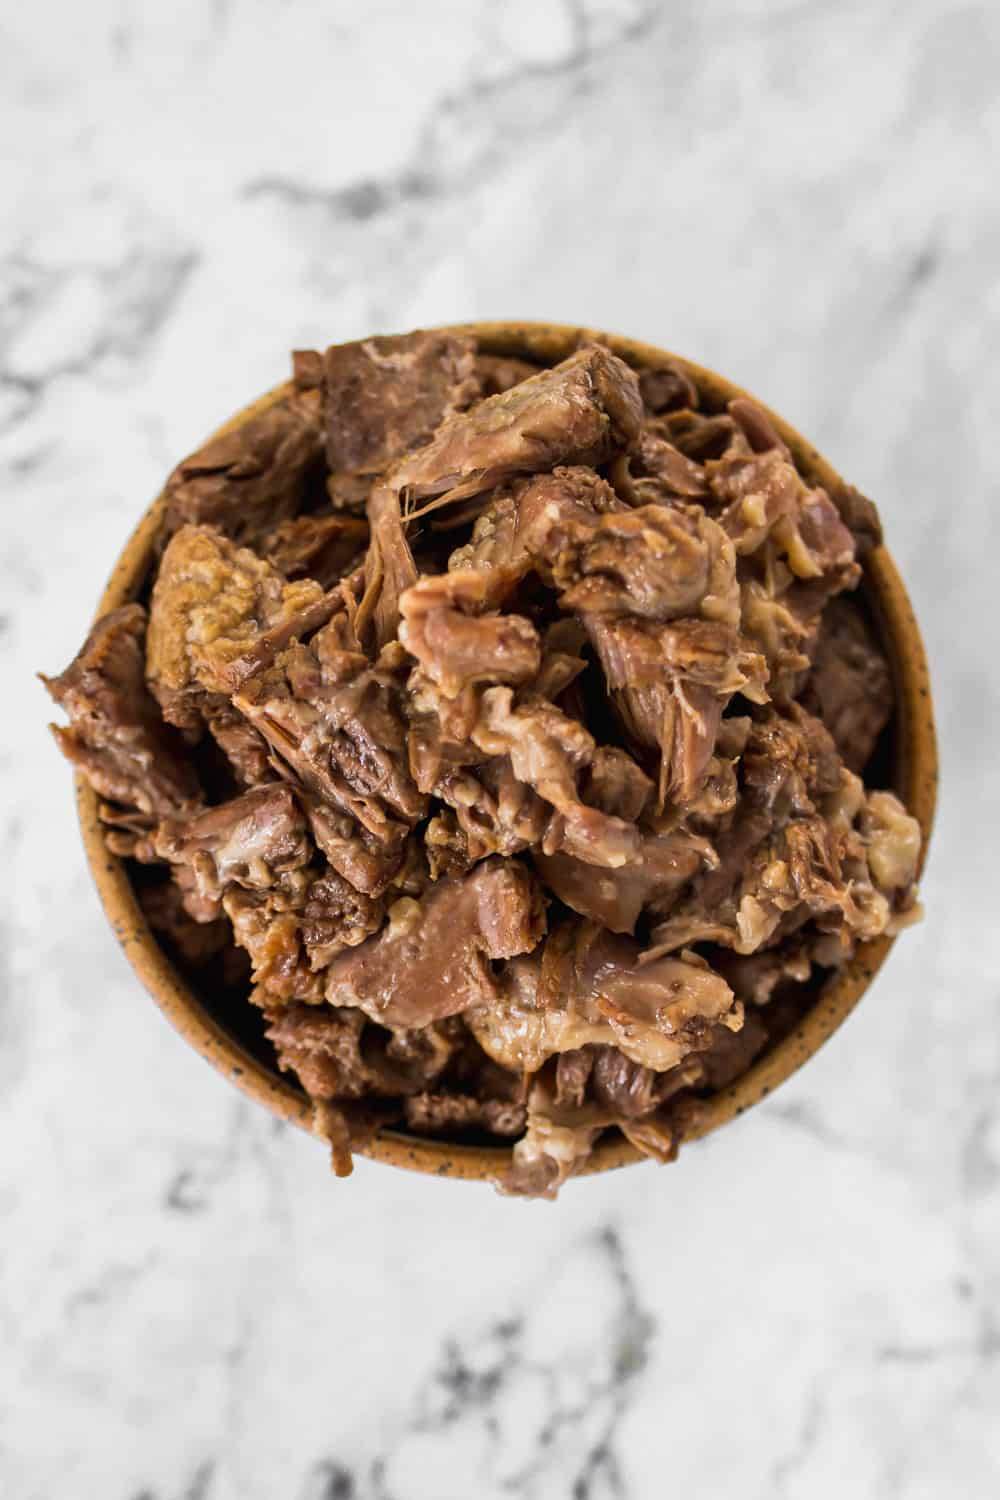 Closeup of a bowl of cooked beef.